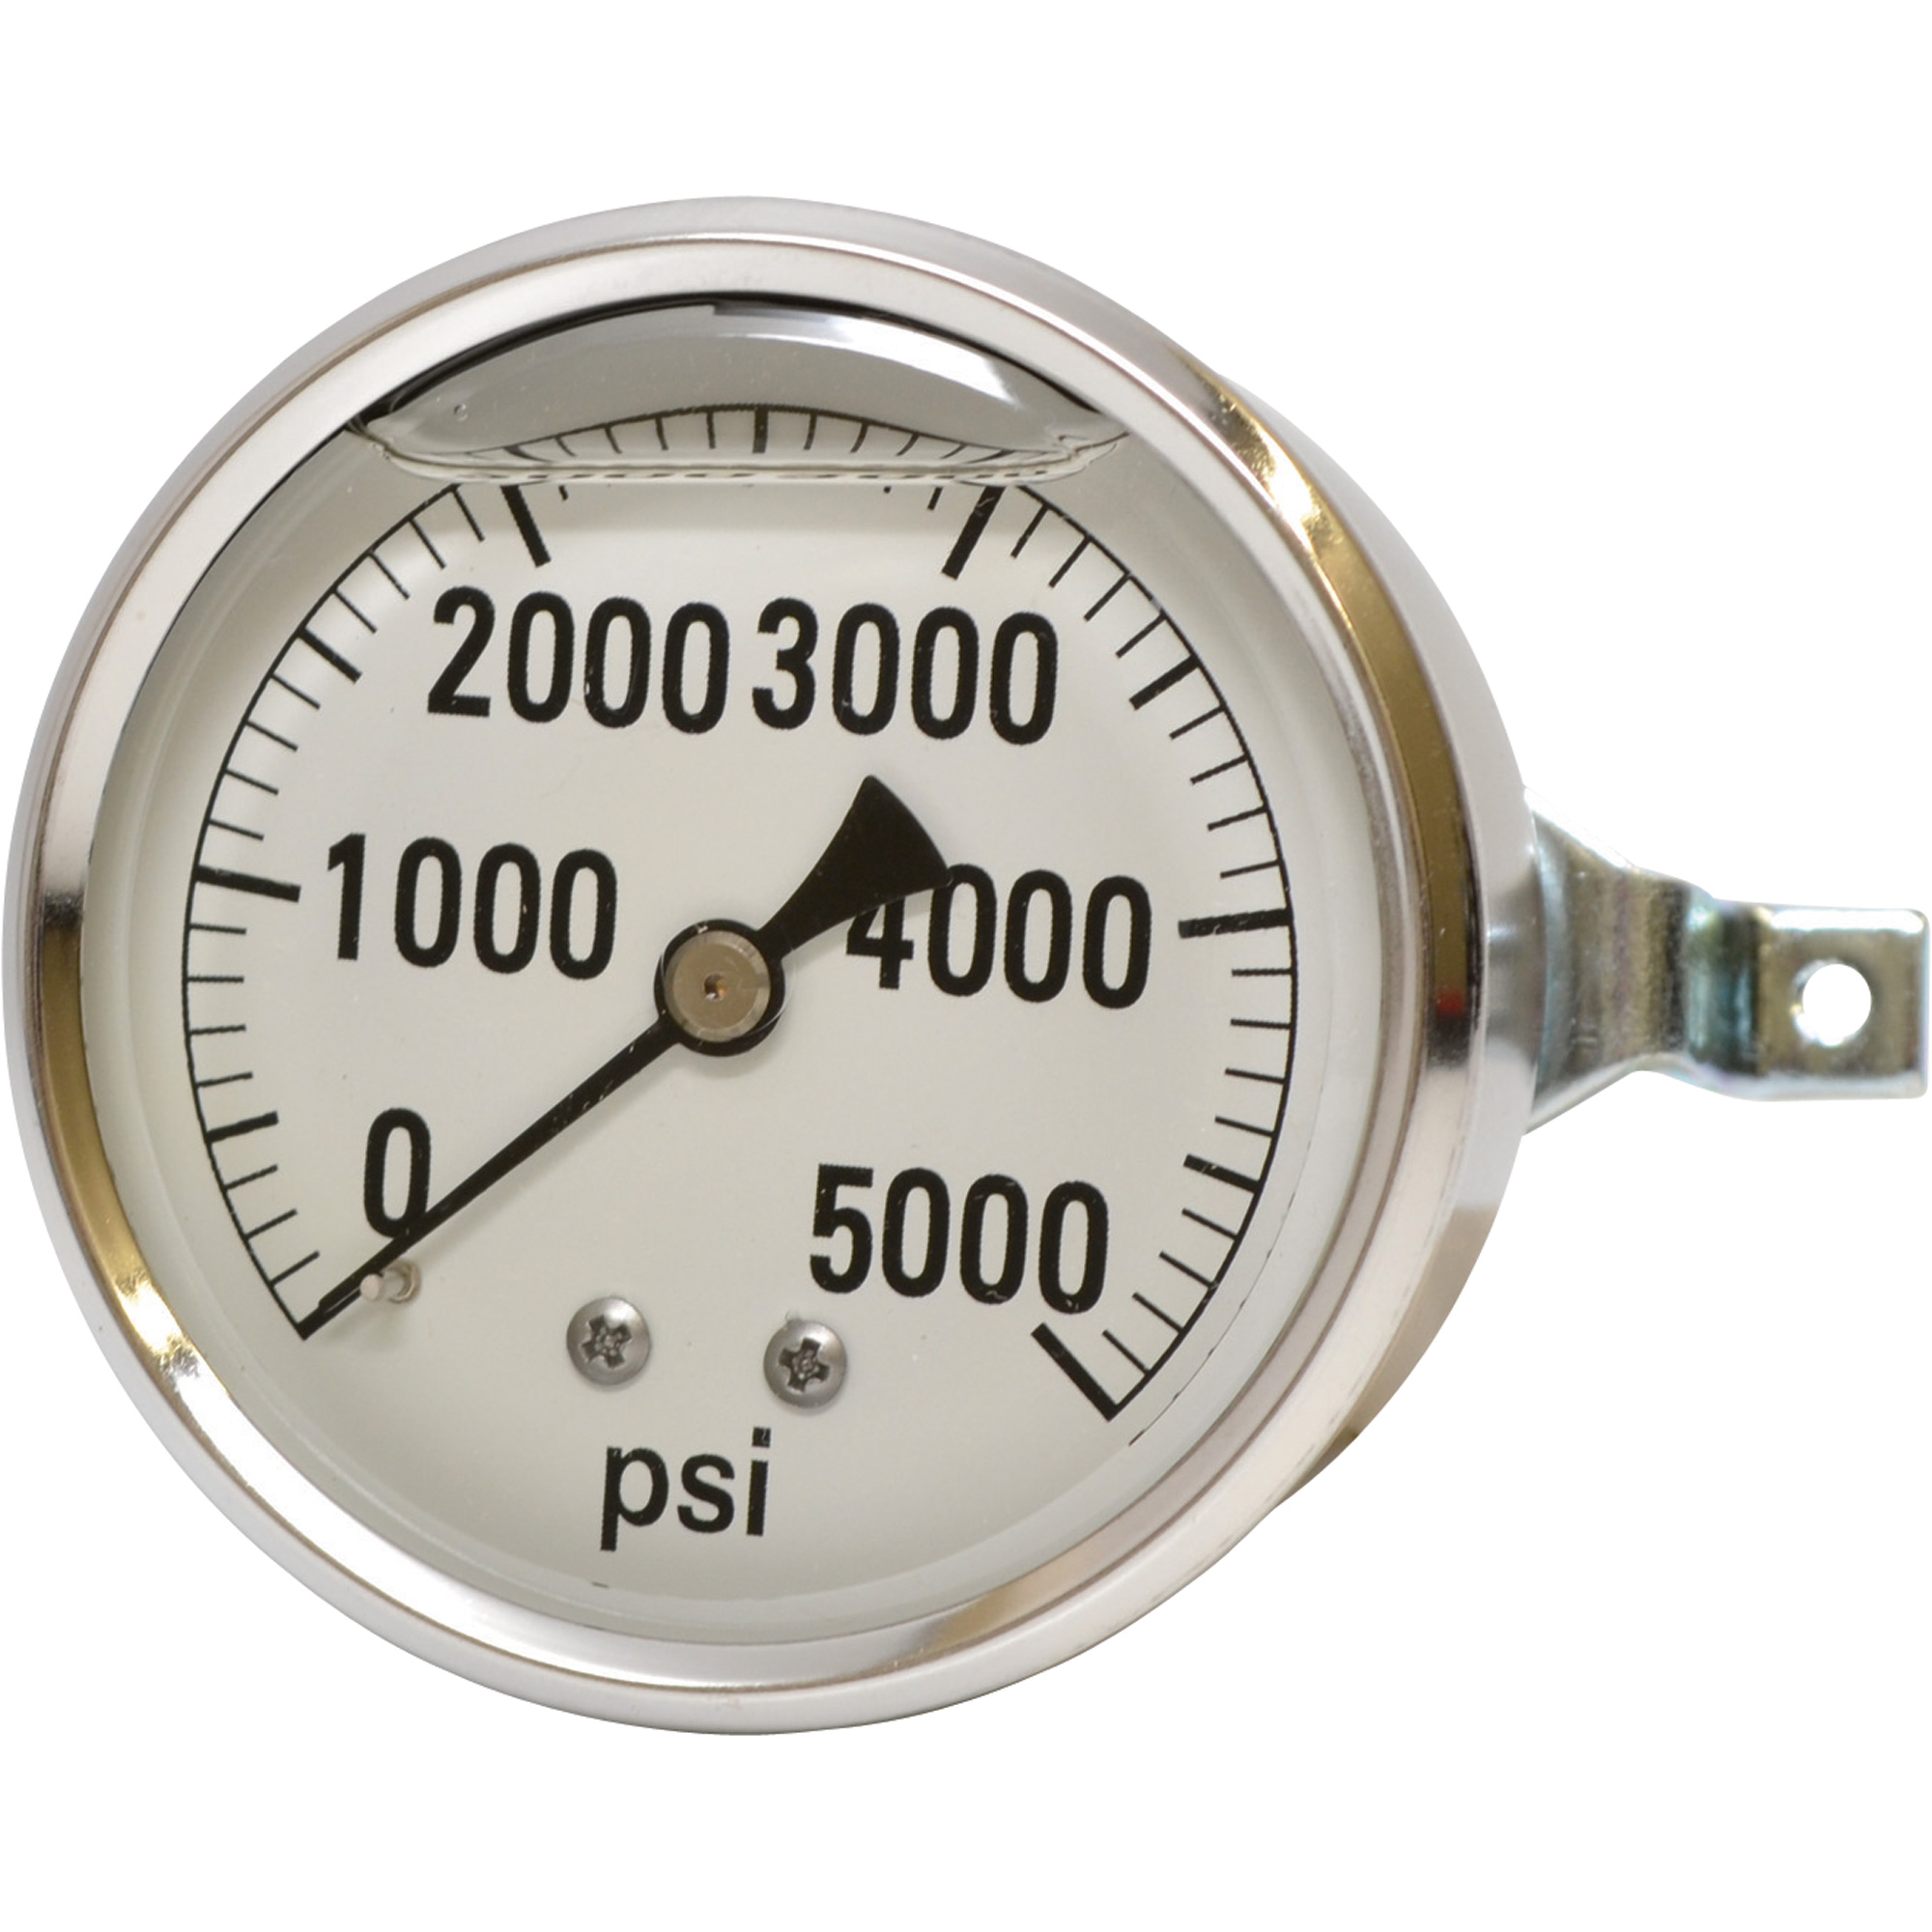 Pressure Gauge 5000 Psi S.S. Back connection 8.914-832.0  [89148320]  LFG-PM-5000